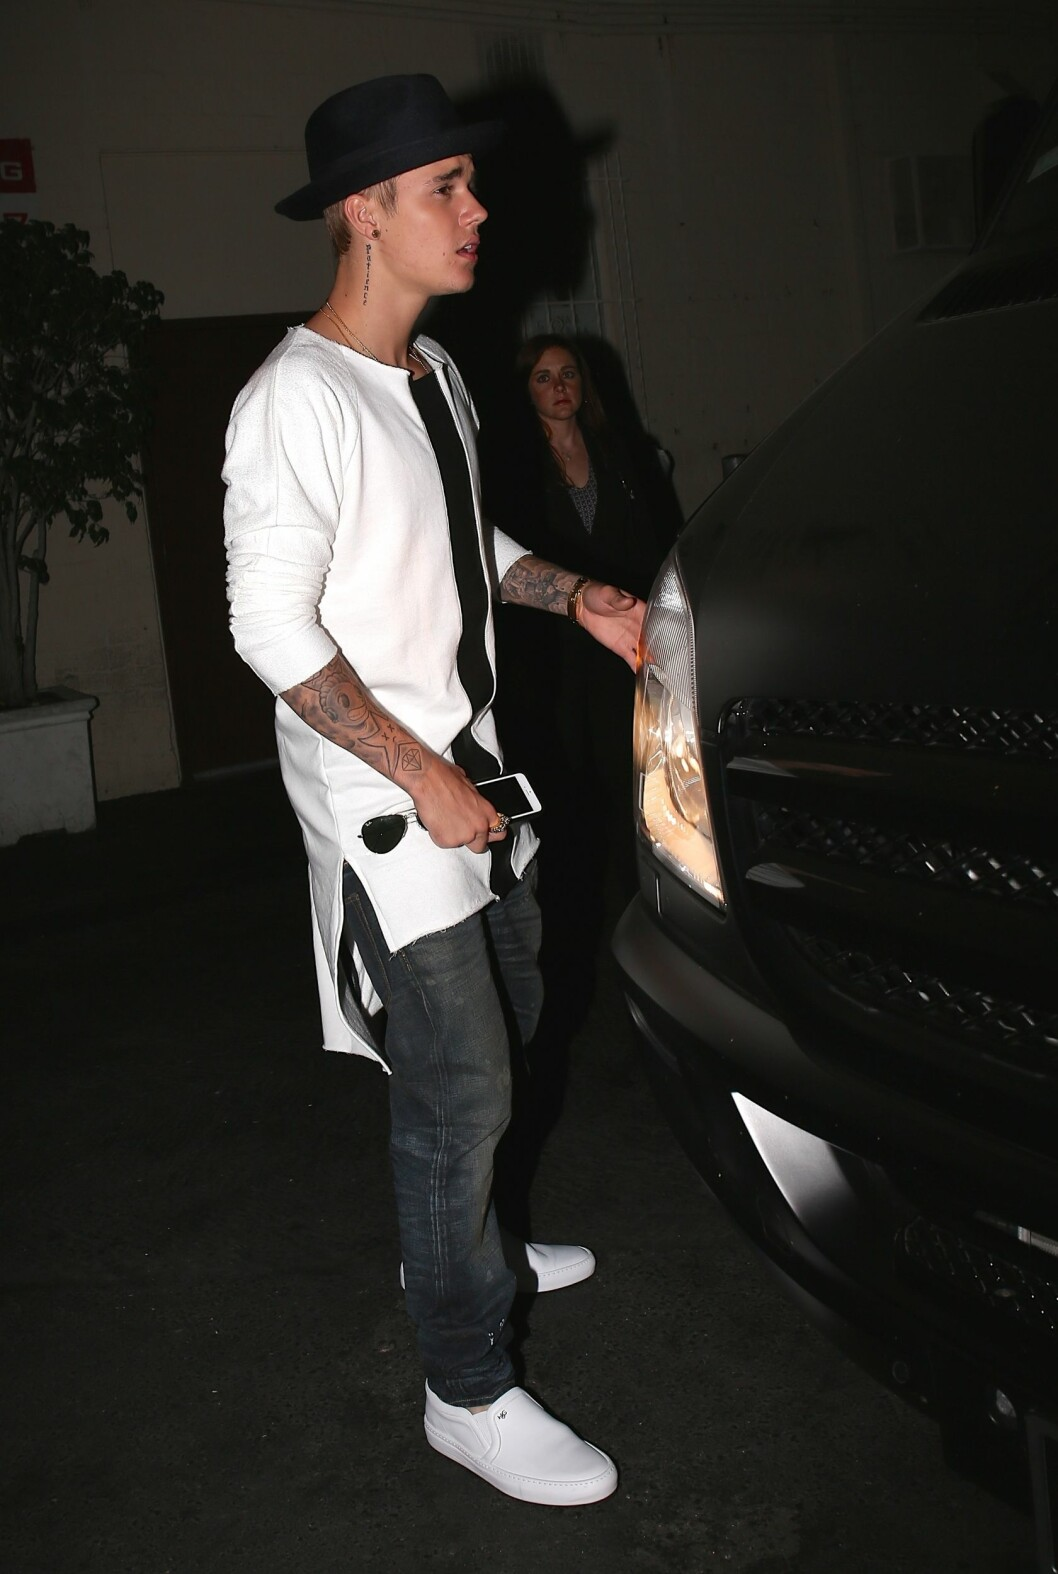 121413, EXCLUSIVE: Singer Justin Bieber leaves Mastro's Steakhouse after having a dinner date with girlfriend Selena Gomez in Beverly Hills. Beverly Hills, California - Friday June 20, 2014. Photograph: ?? Devone Byrd, PacificCoastNews. Los Angeles Office: +1 310.822.0419 London Office: +44 208.090.4079 sales@pacificcoastnews.com FEE MUST BE AGREED PRIOR TO USAGE  All Over Press Foto: Devone Byrd, PacificCoastNews/Al